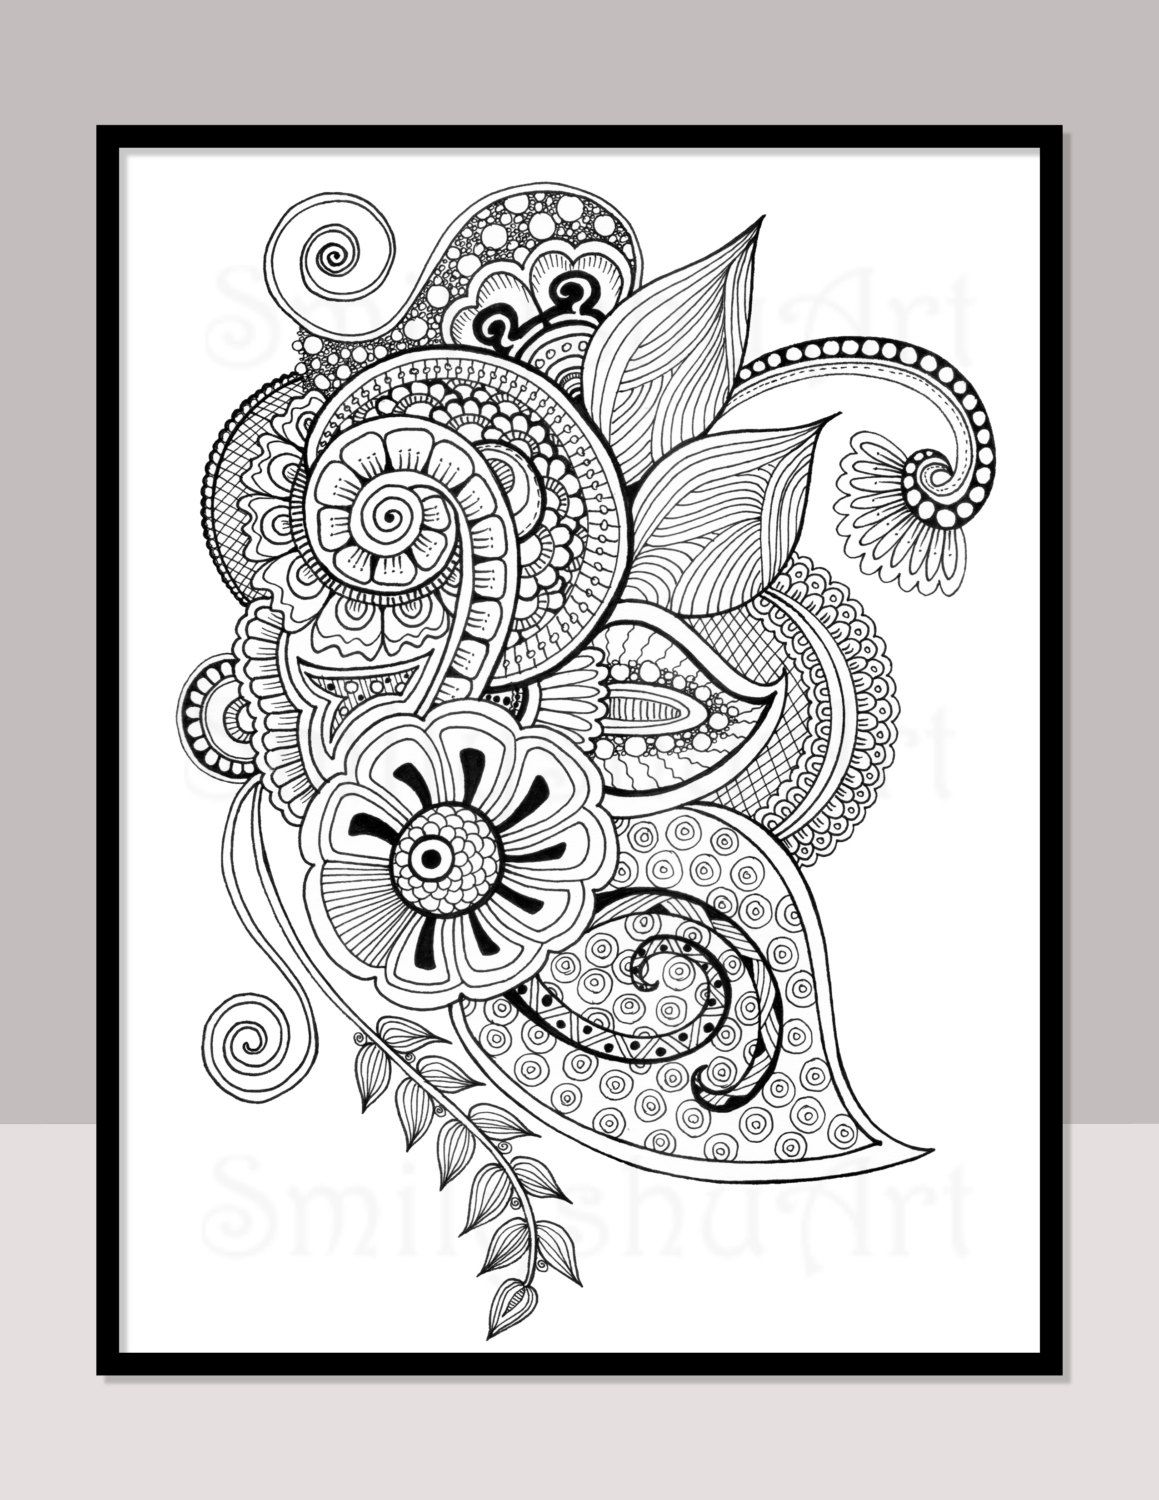 Printable Coloring Page Use as Invitations Greeting cards